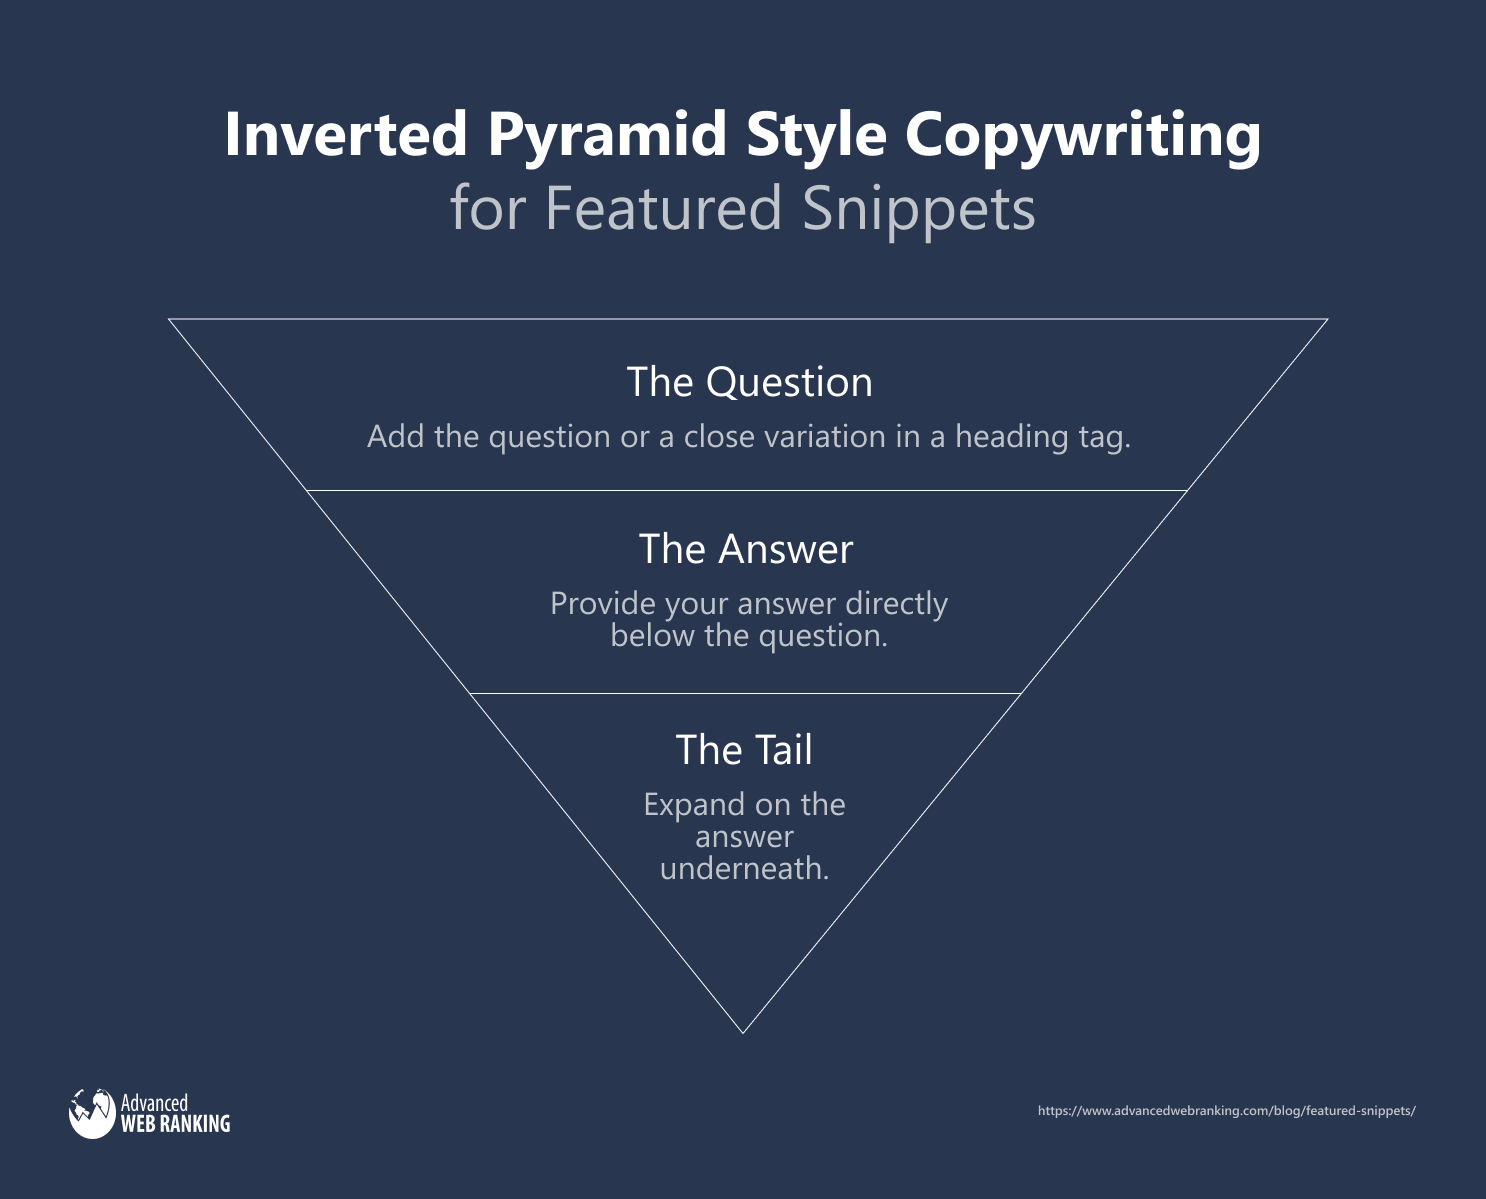 Graph showing the inverted pyramid style copywriting